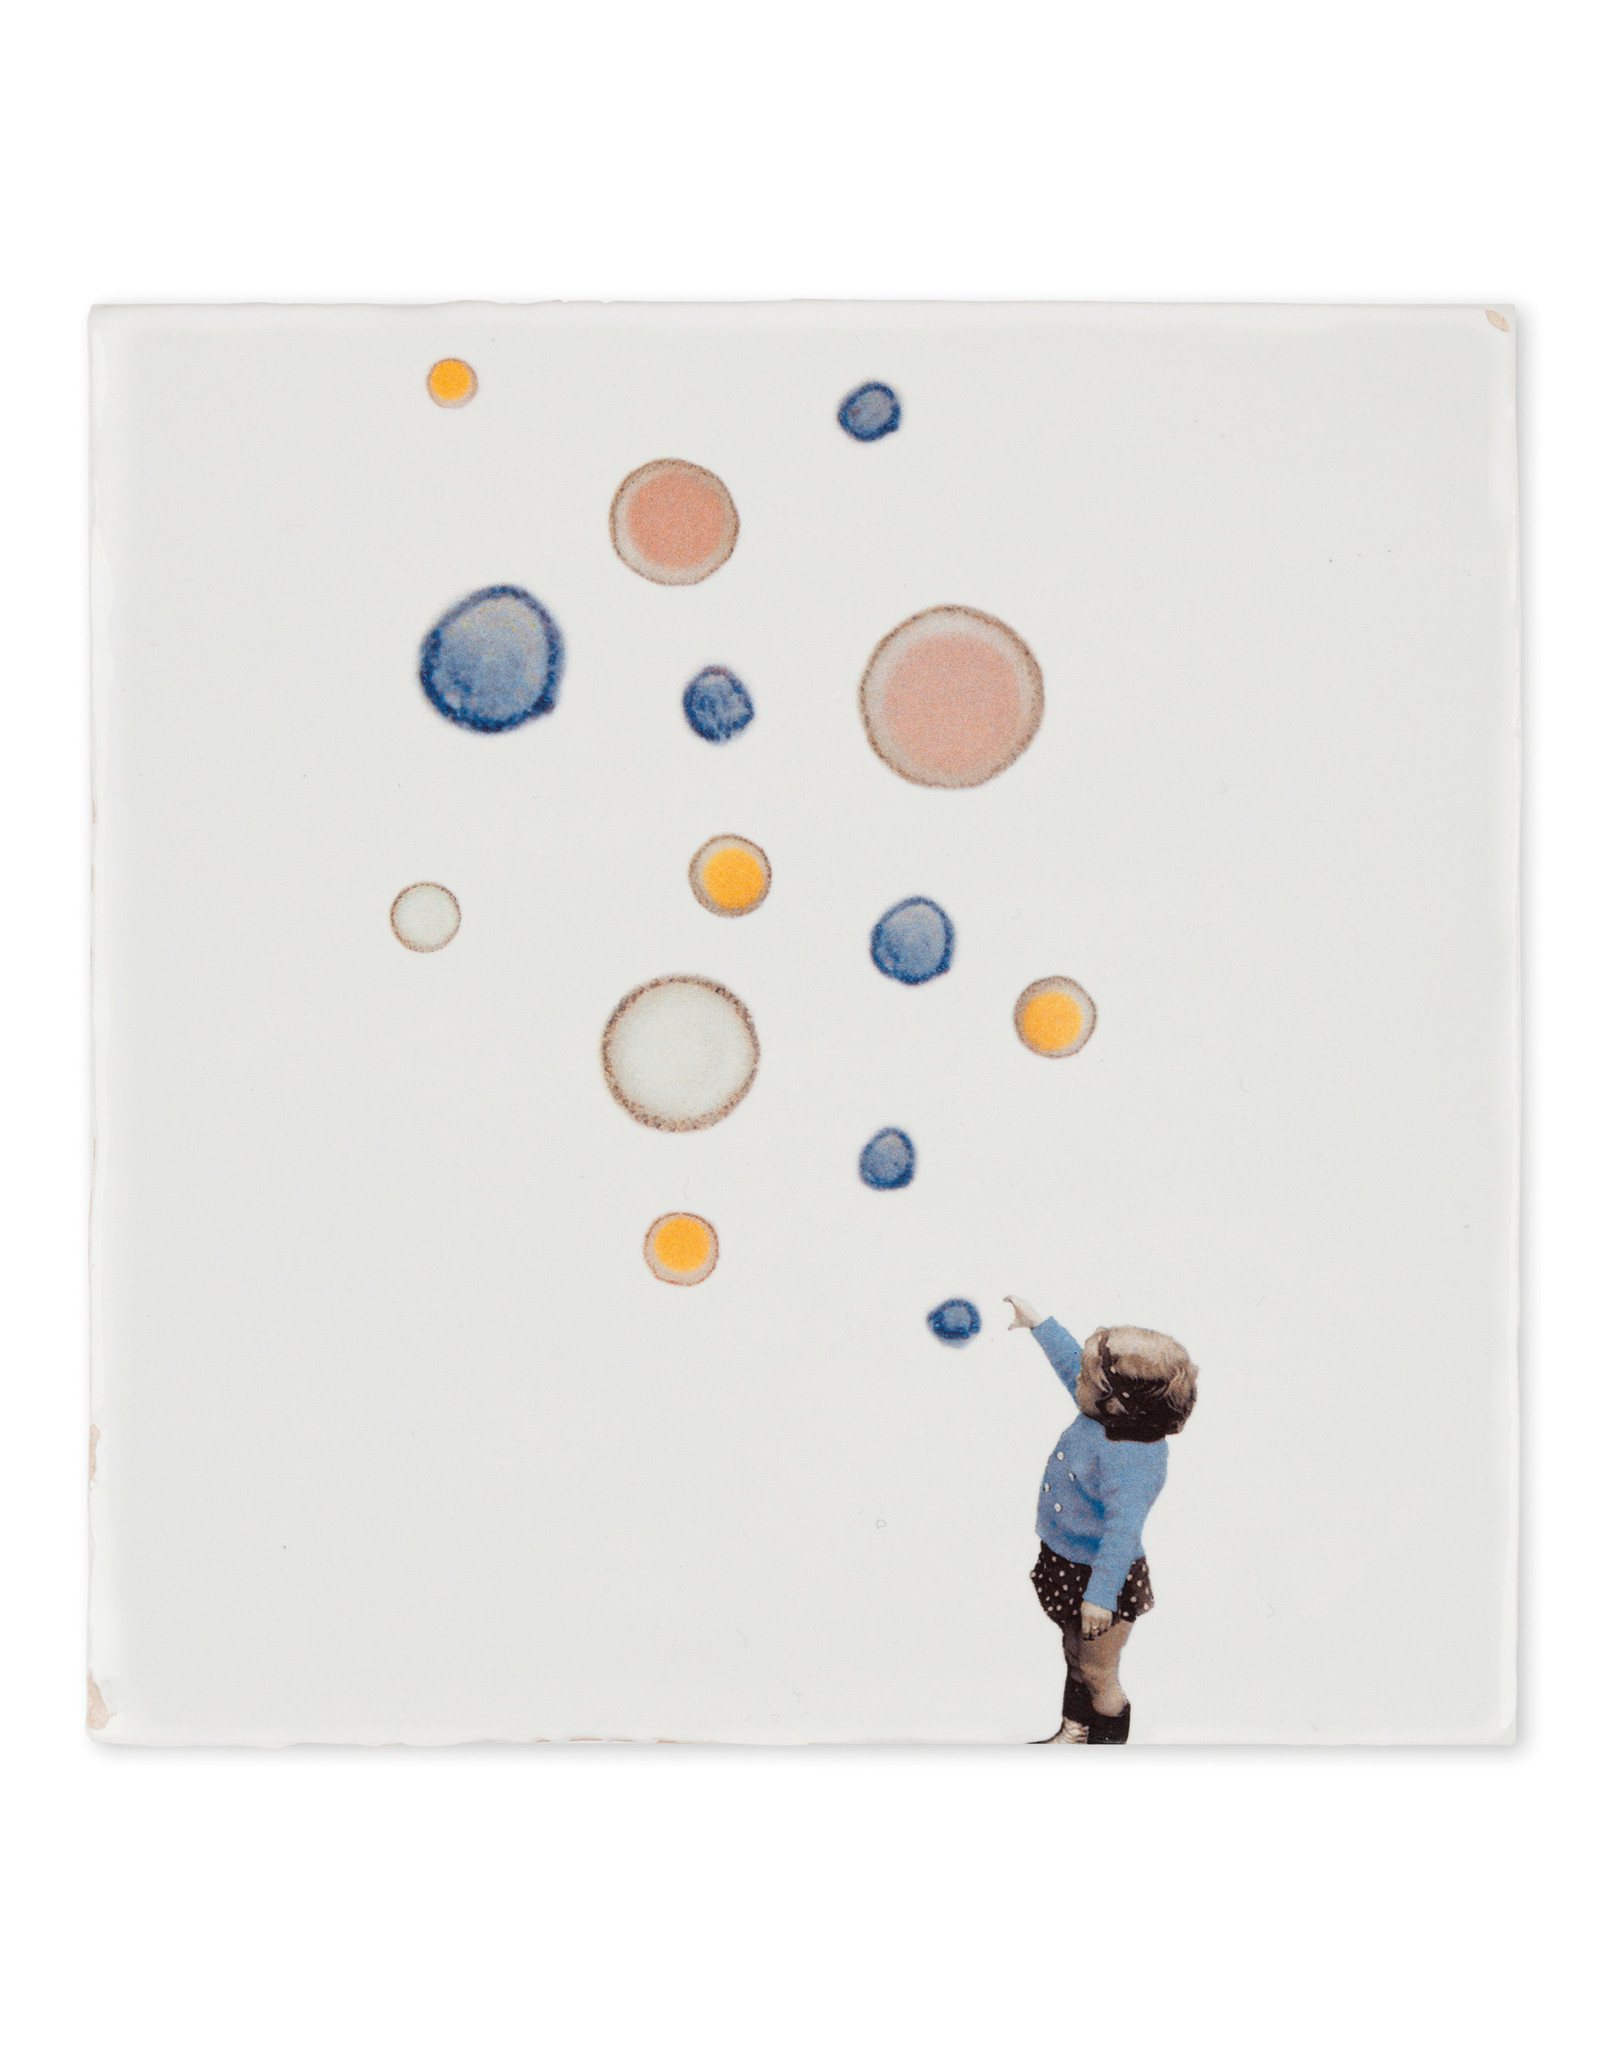 Storytiles Catching bubbles